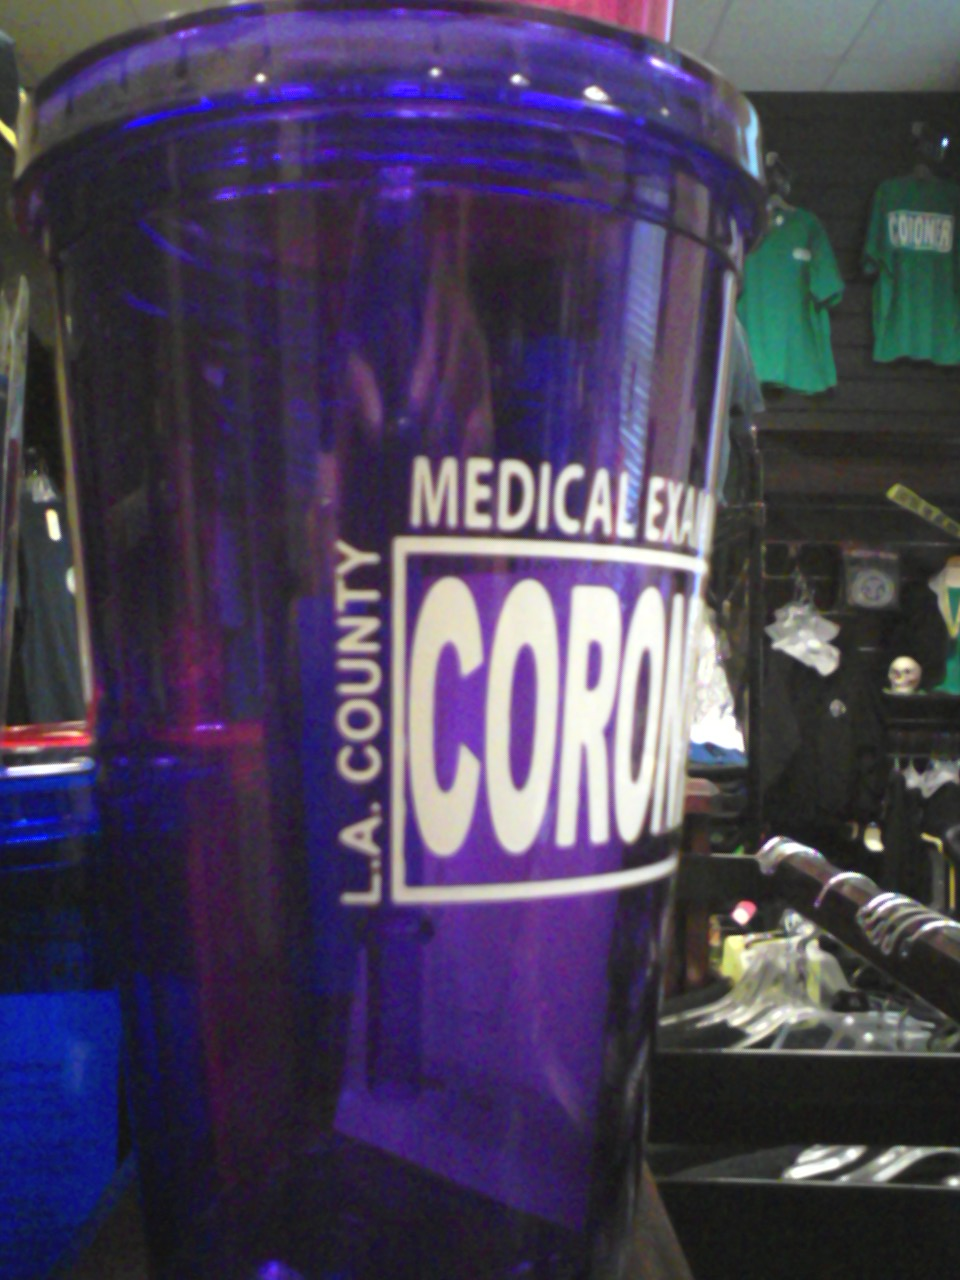 L.A. County Medical Examiner-Coroner Block Tumbler-1